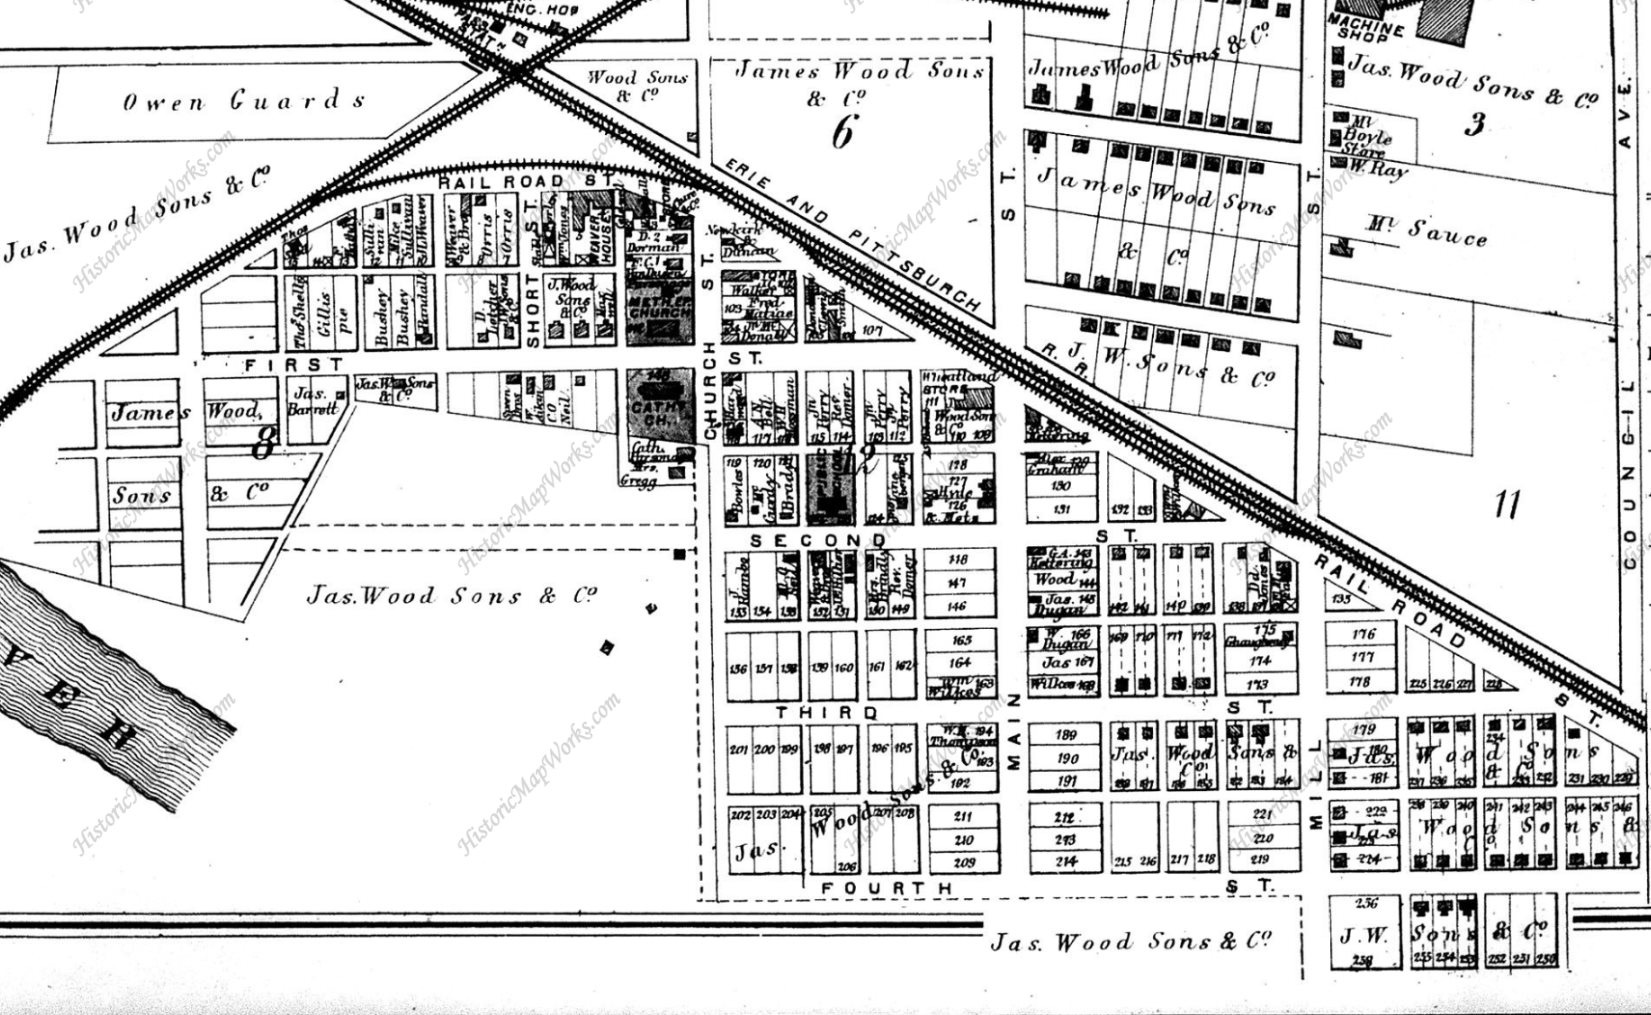 Wheatland PA Close-up in 1873